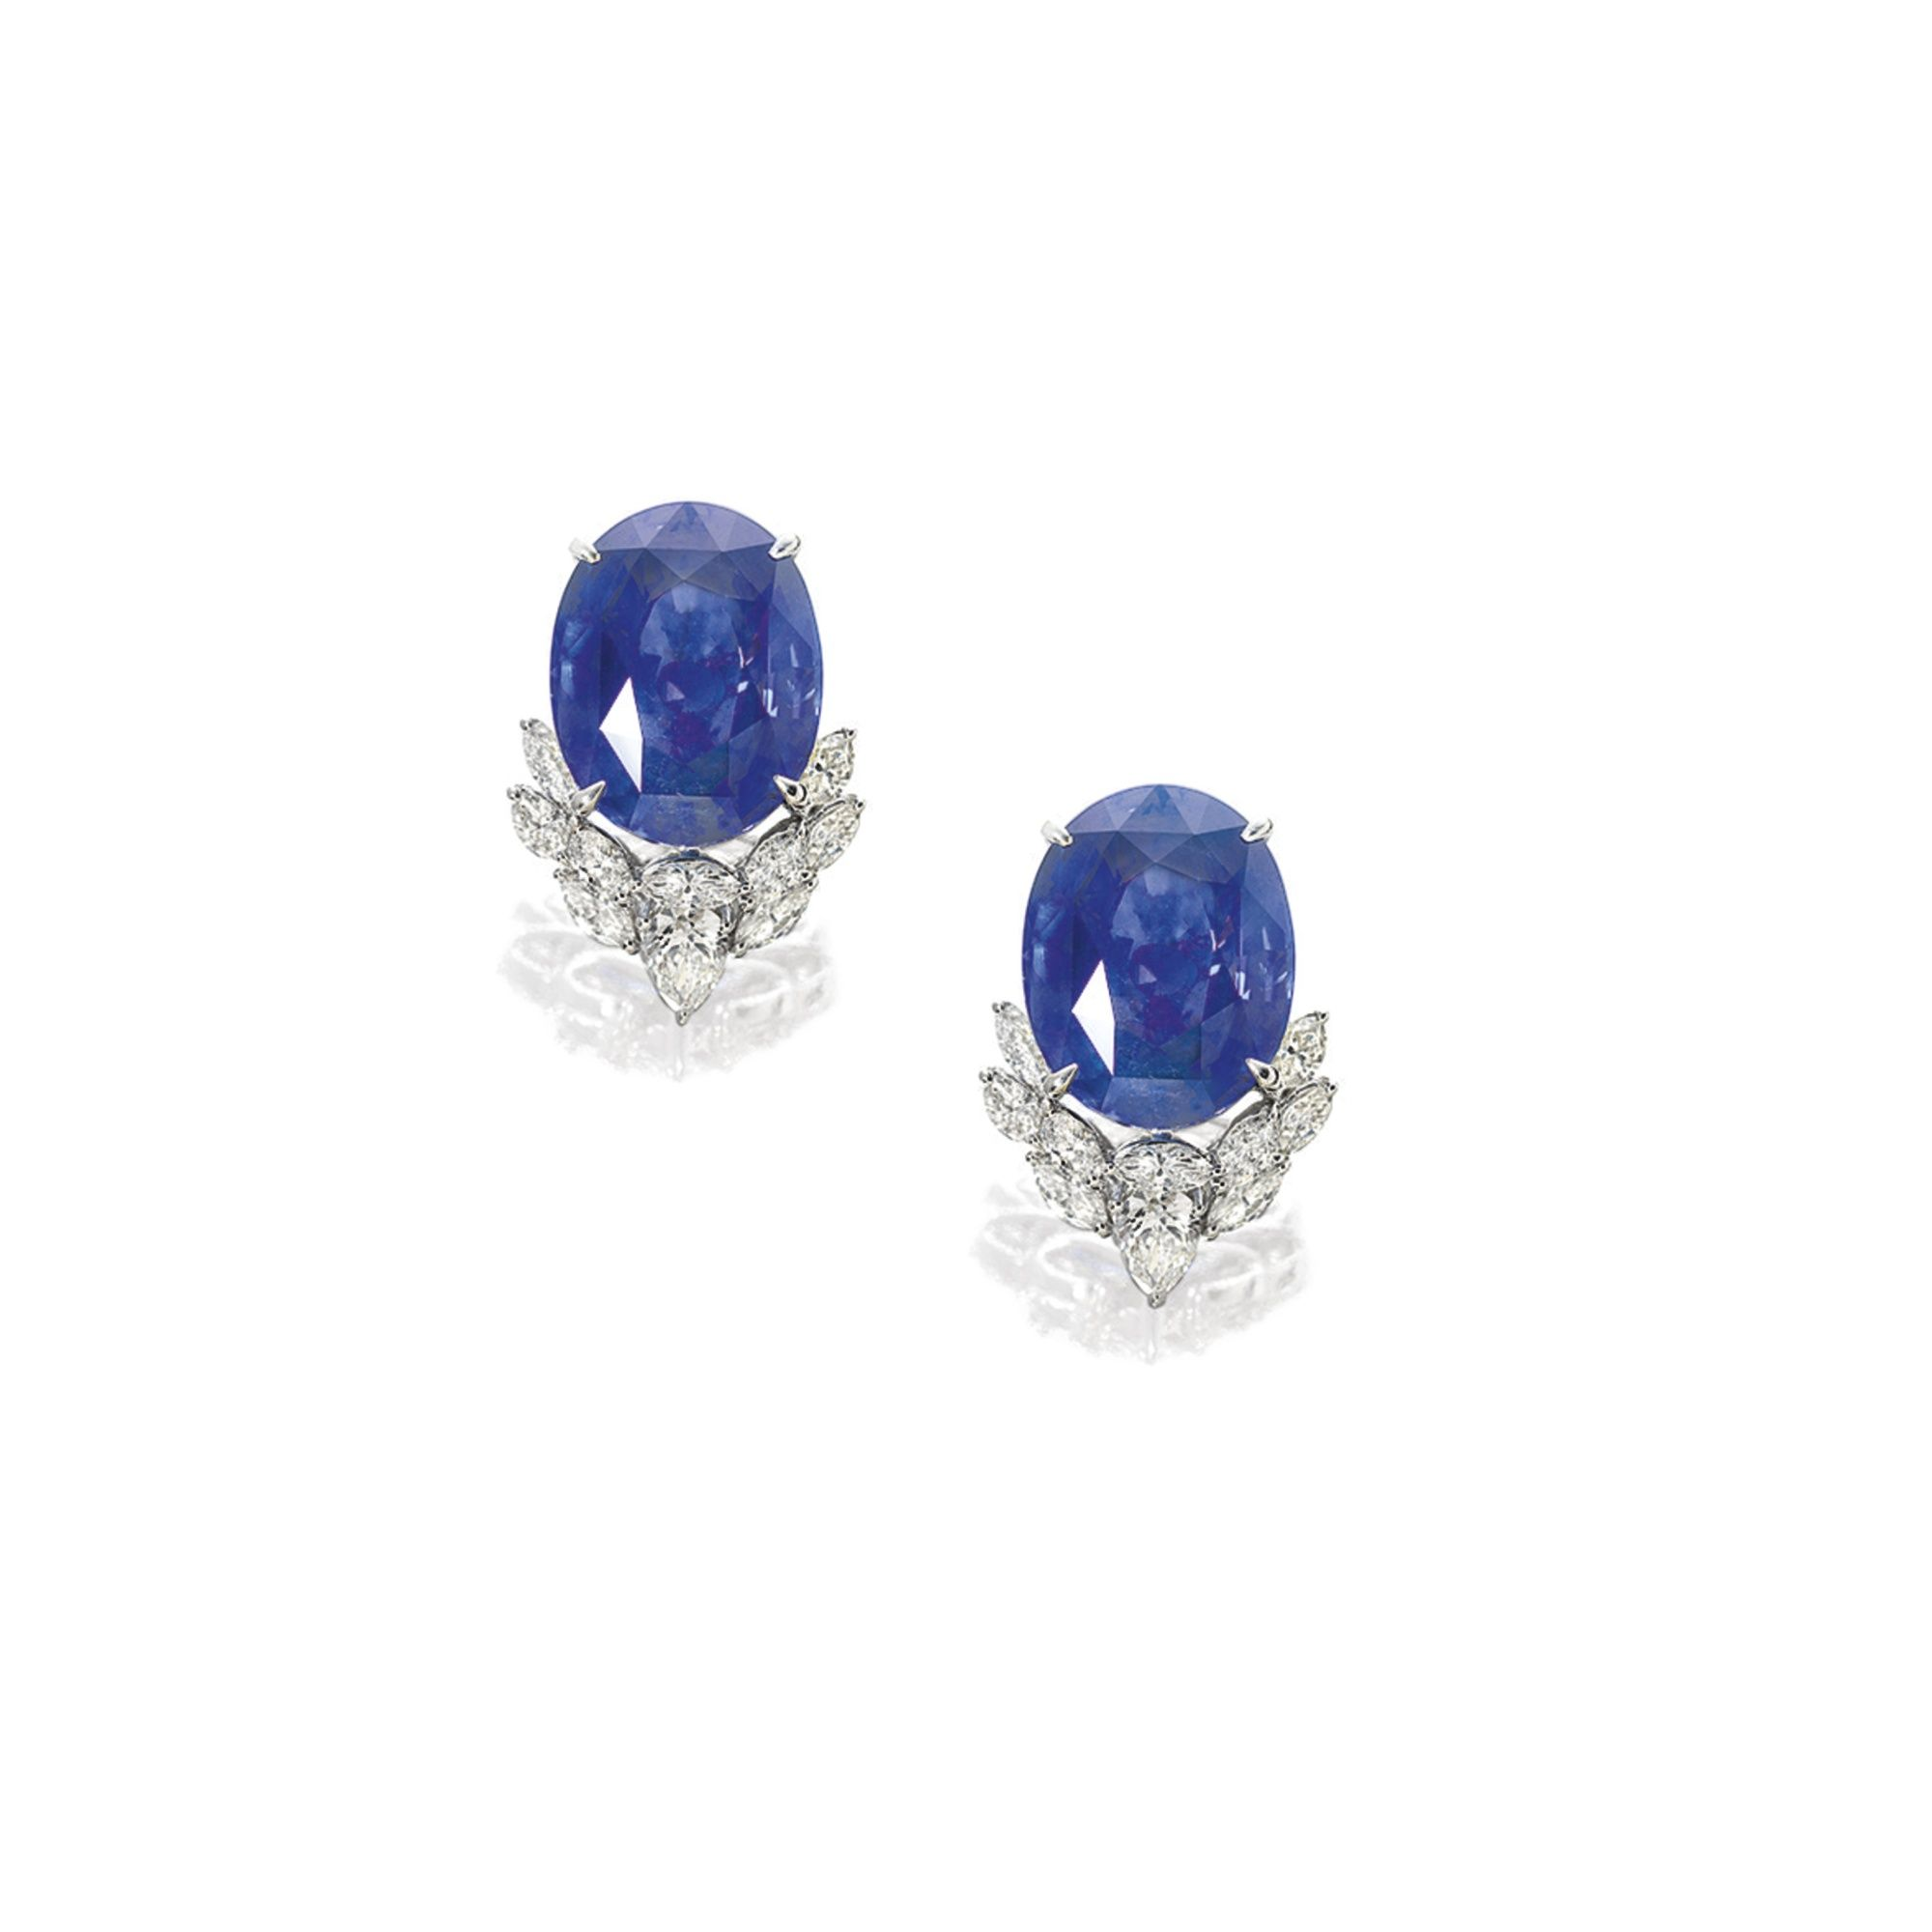 diamond john sheen and lyst diamonds golden earring cut hardy sapphire jewelry magic stud gallery